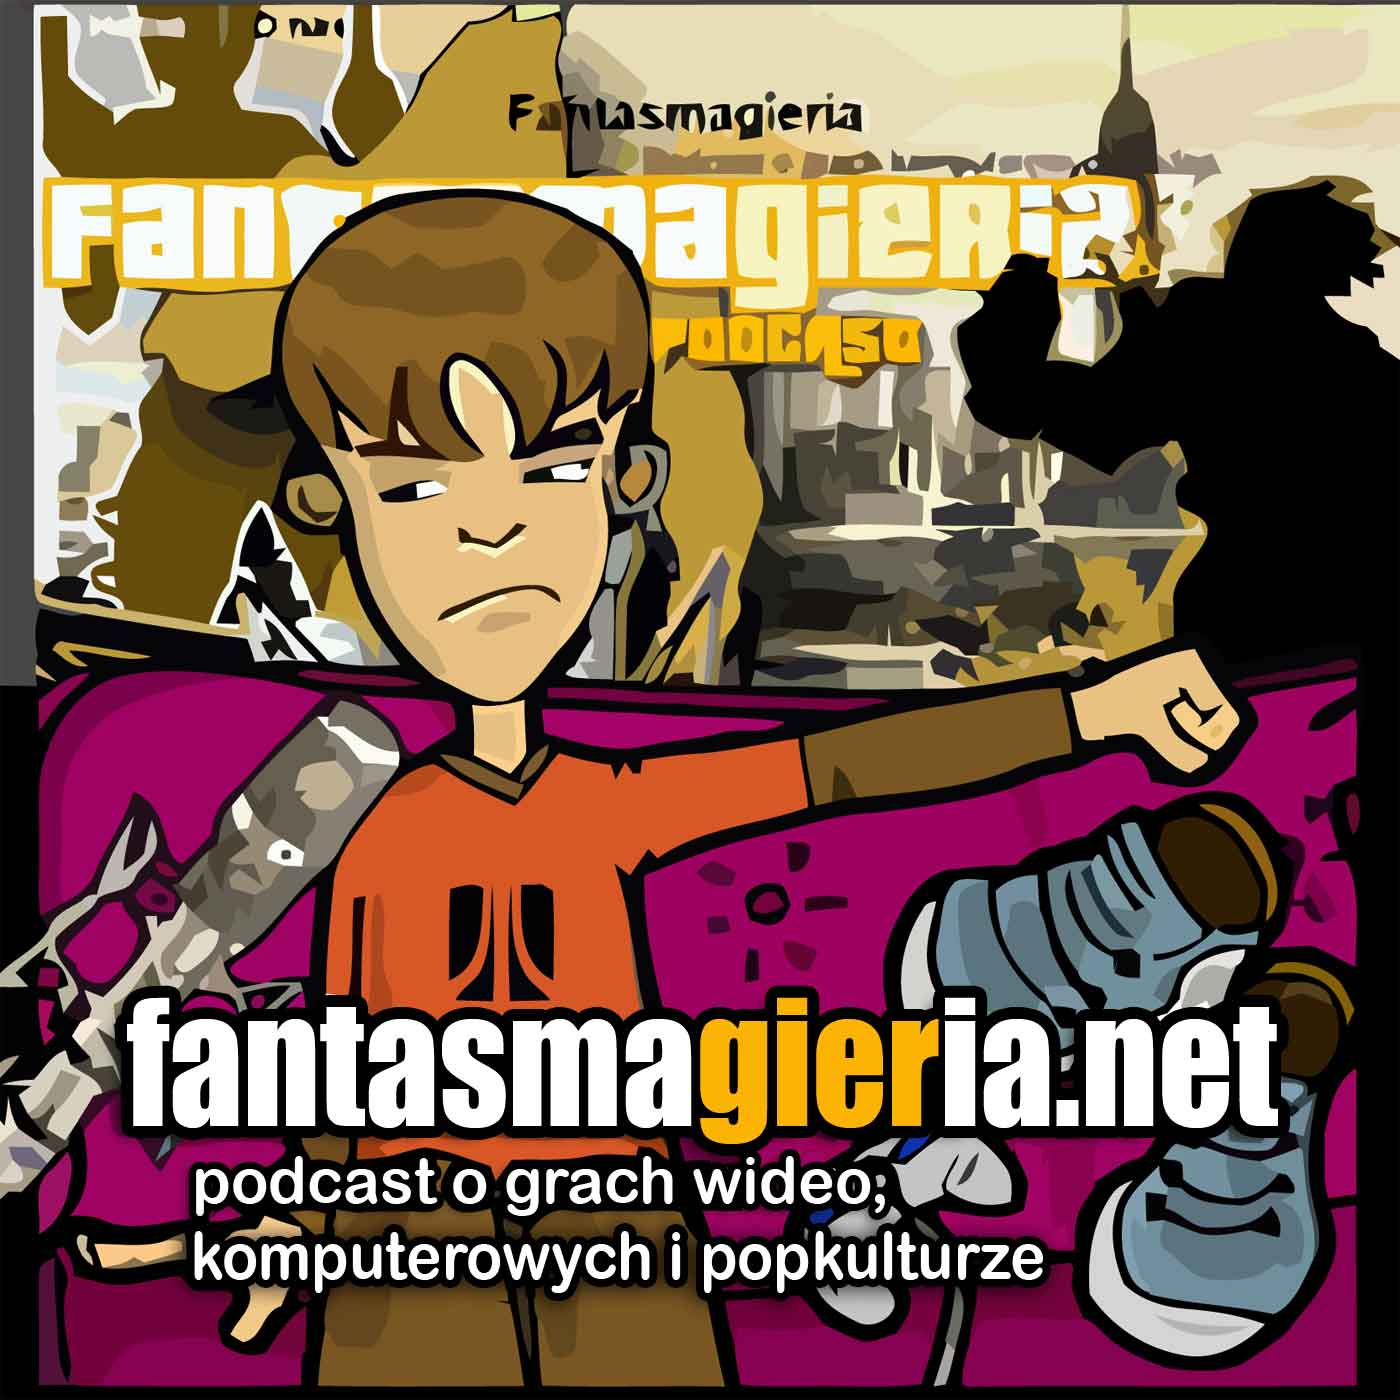 Fantasmagieria - podcast o grach wideo.